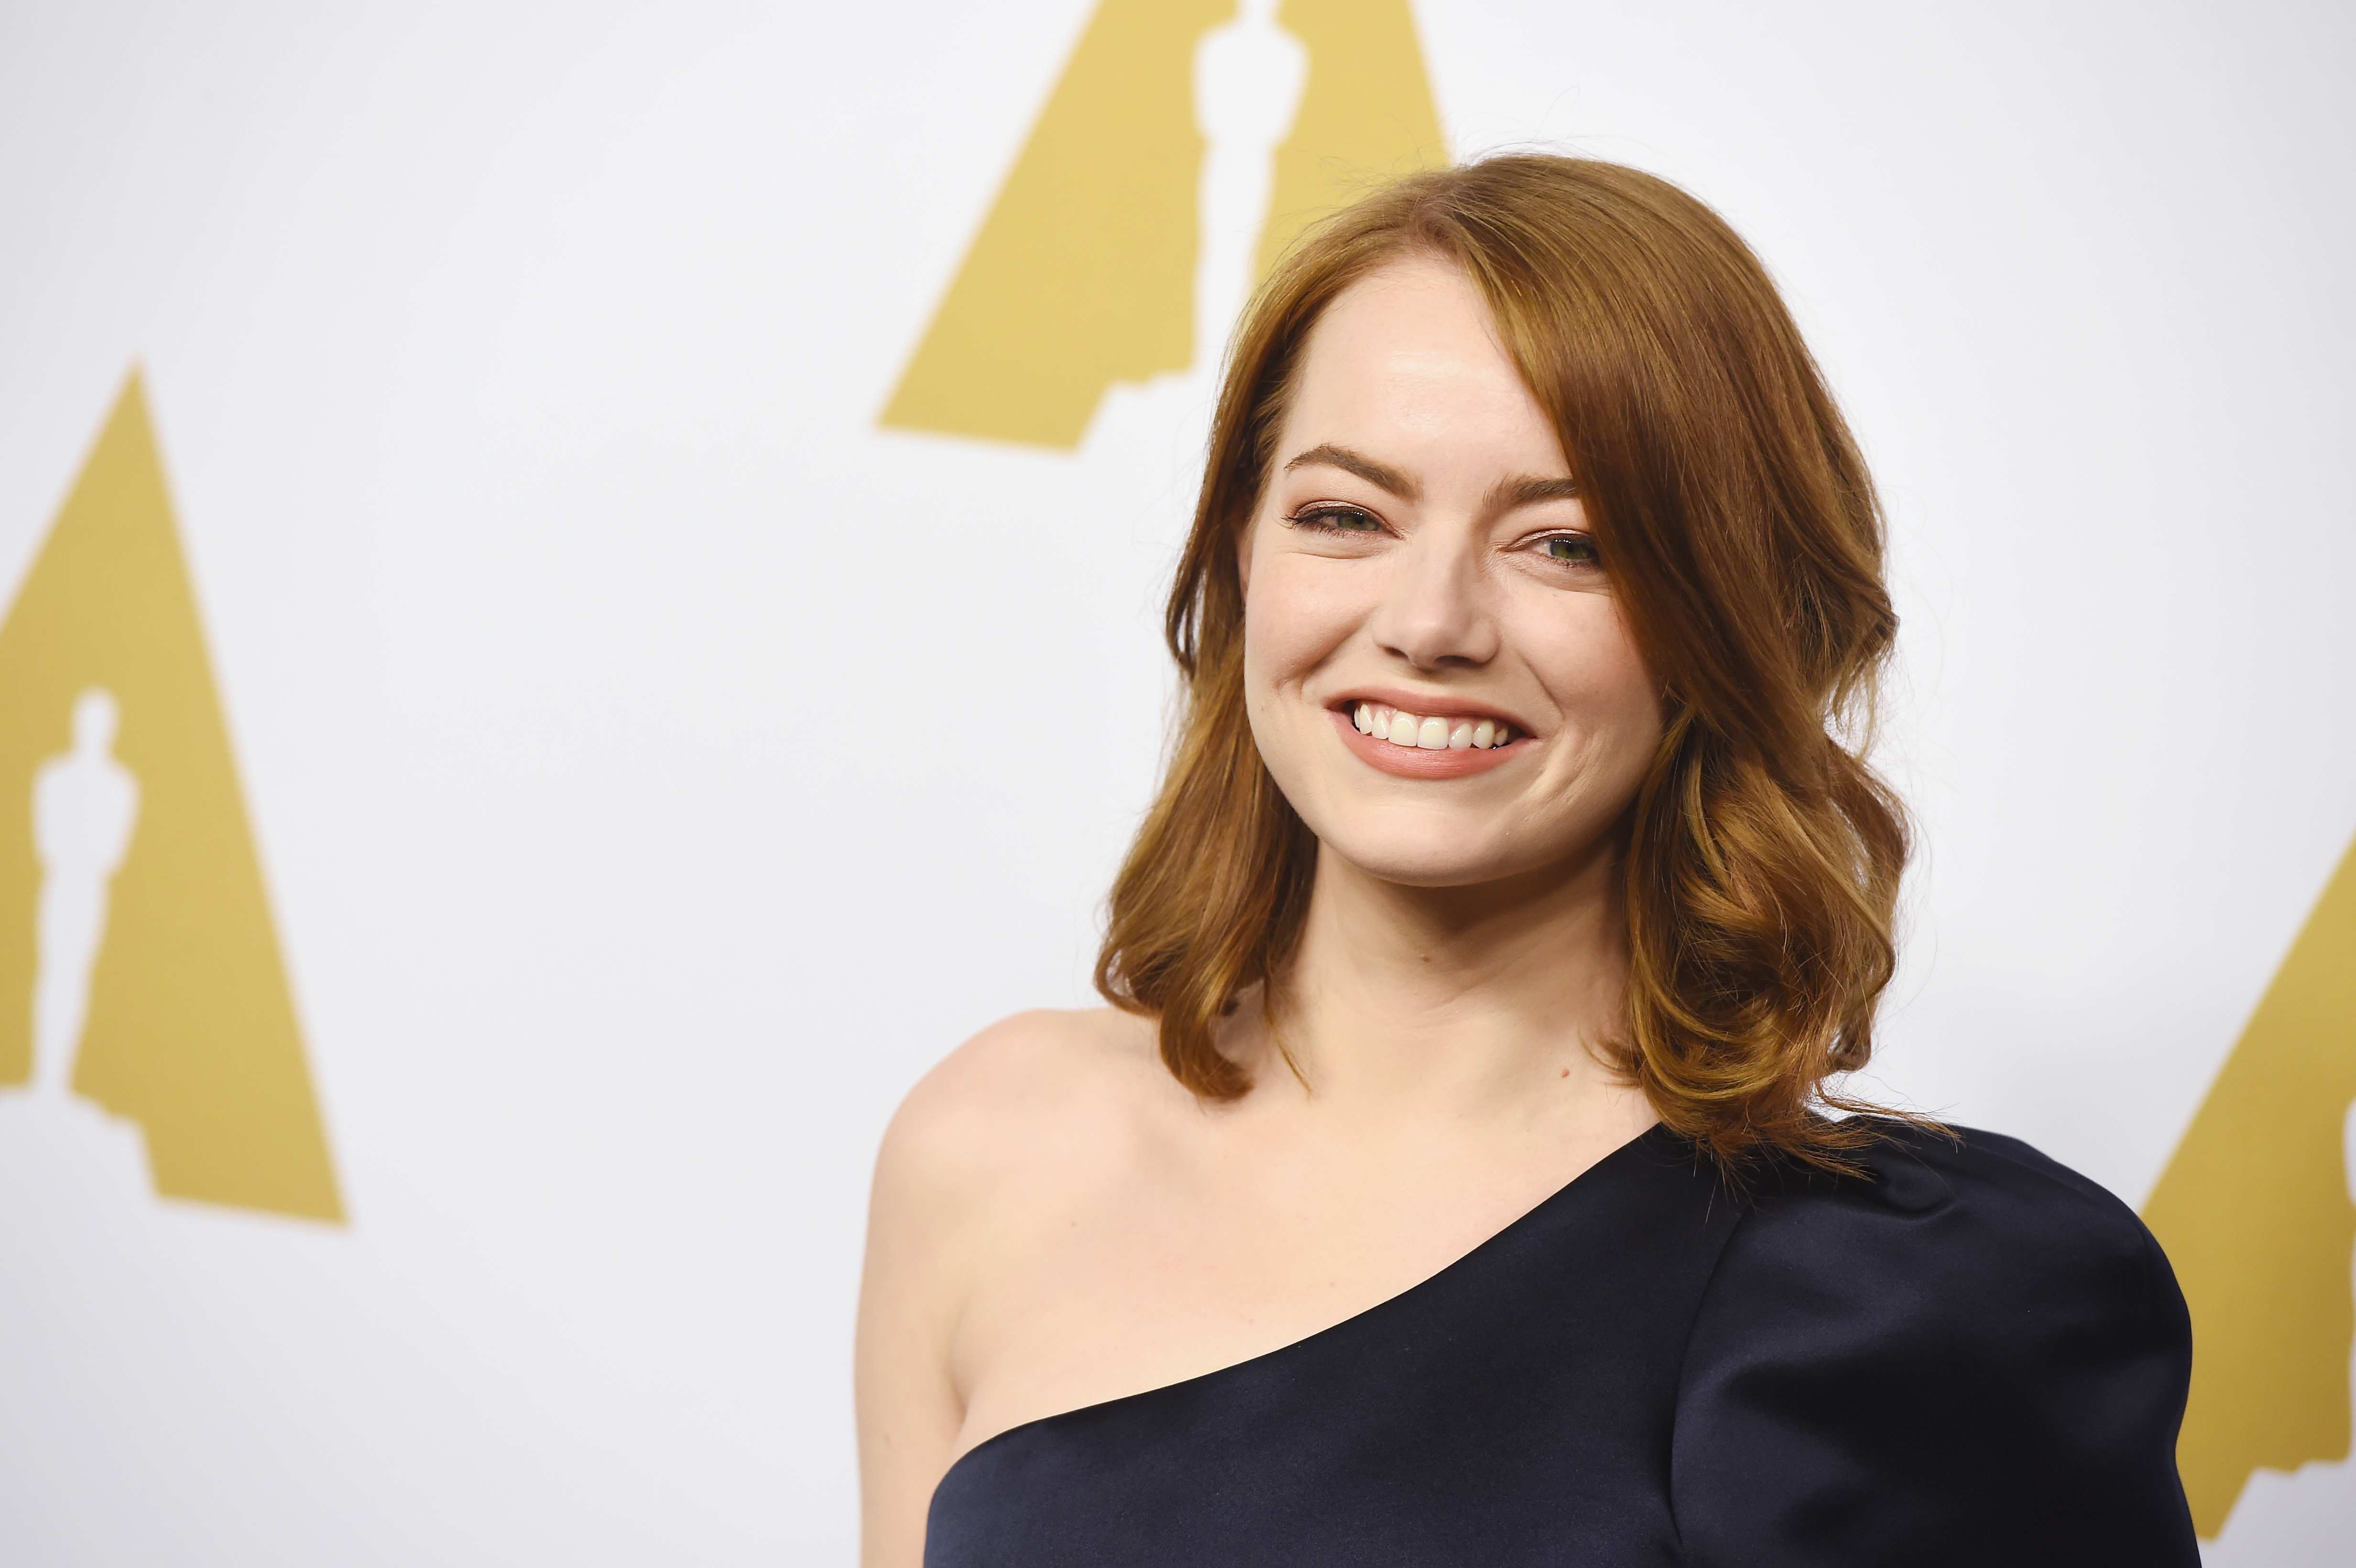 Emma Stone's Male Co-Stars Took Pay Cuts So Everyone Could Have Equal Pay